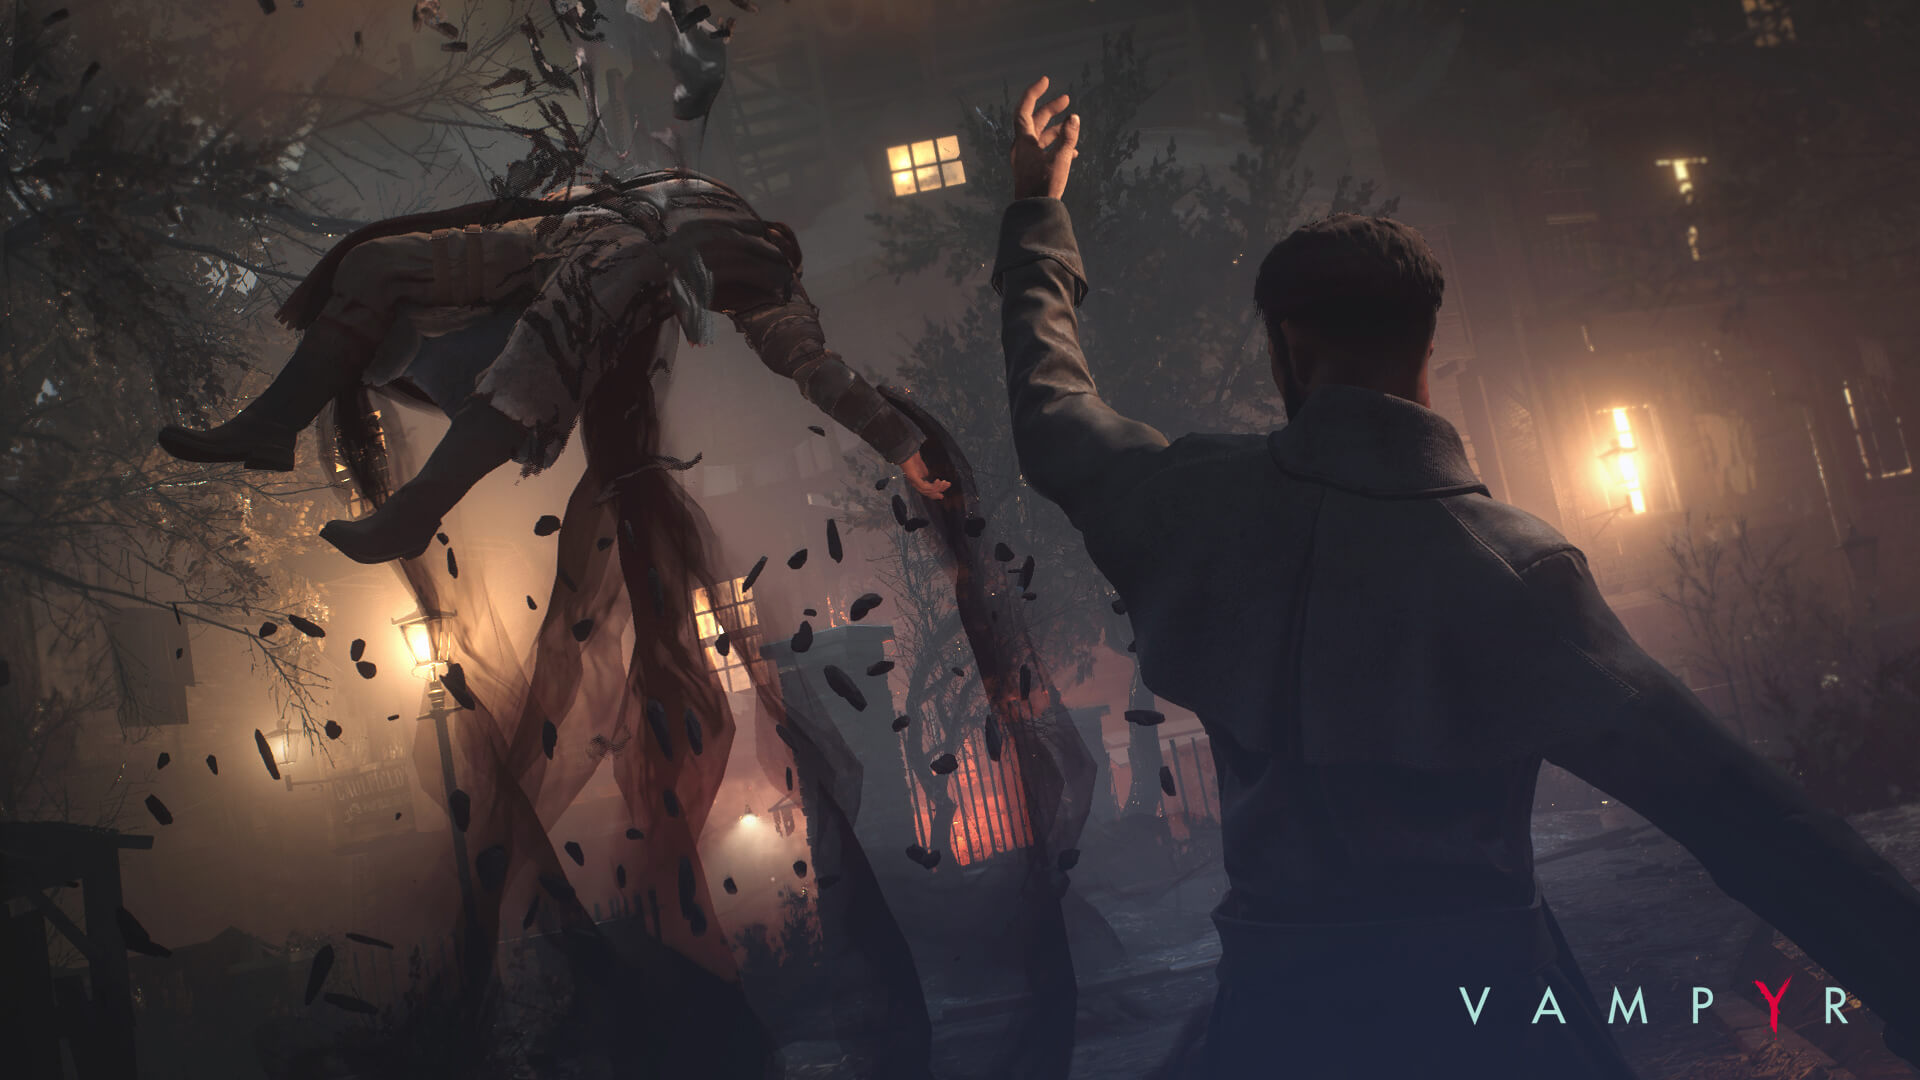 Vampyr Gets an E3 Teaser Trailer and a Release Date